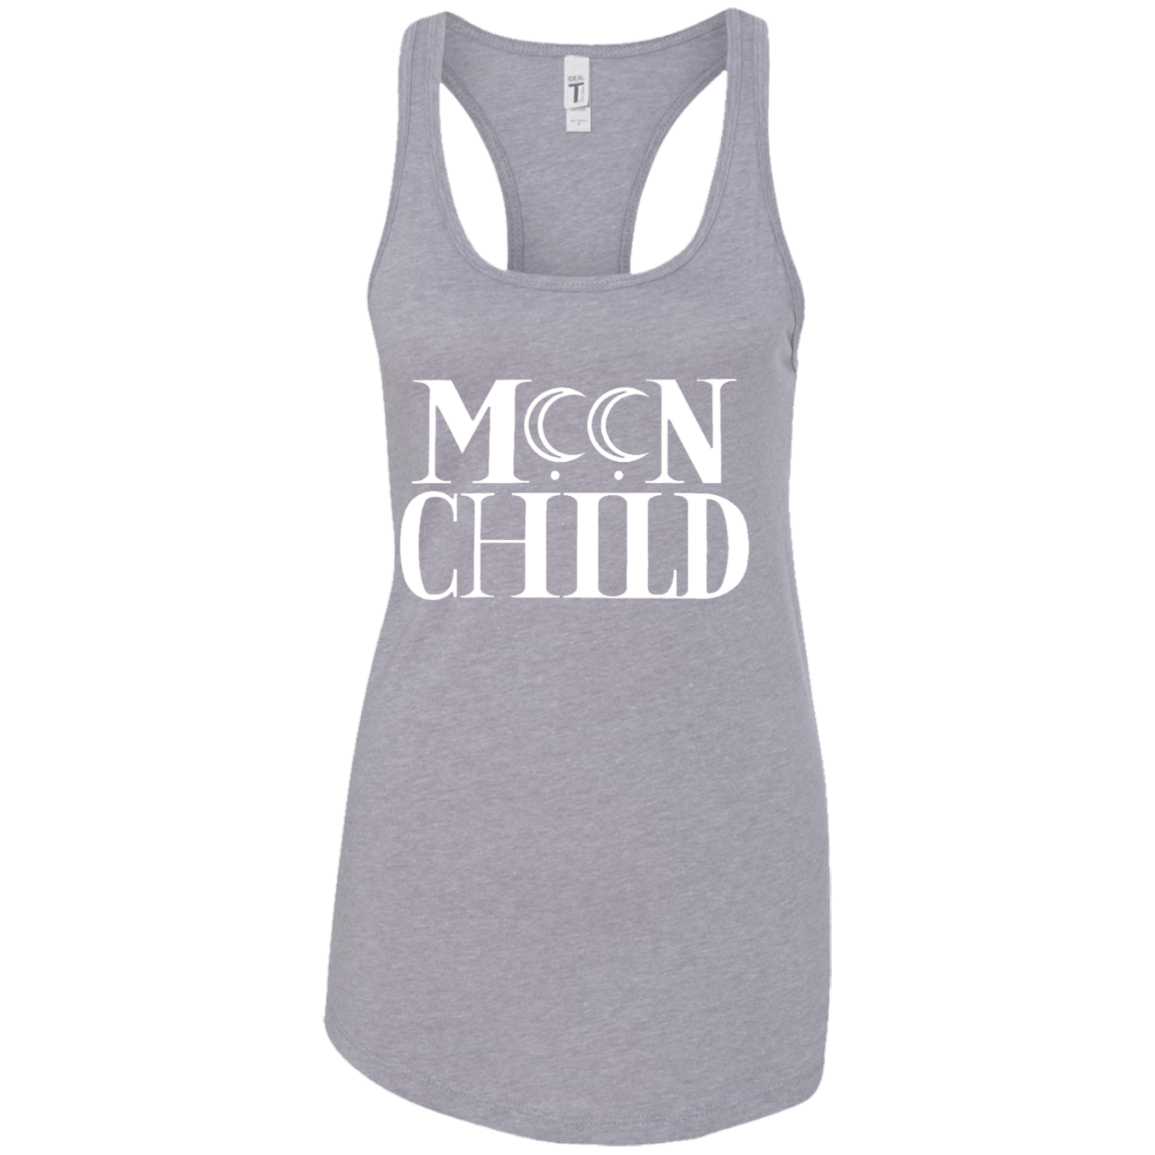 Moon Child - Shirt Shop Nation